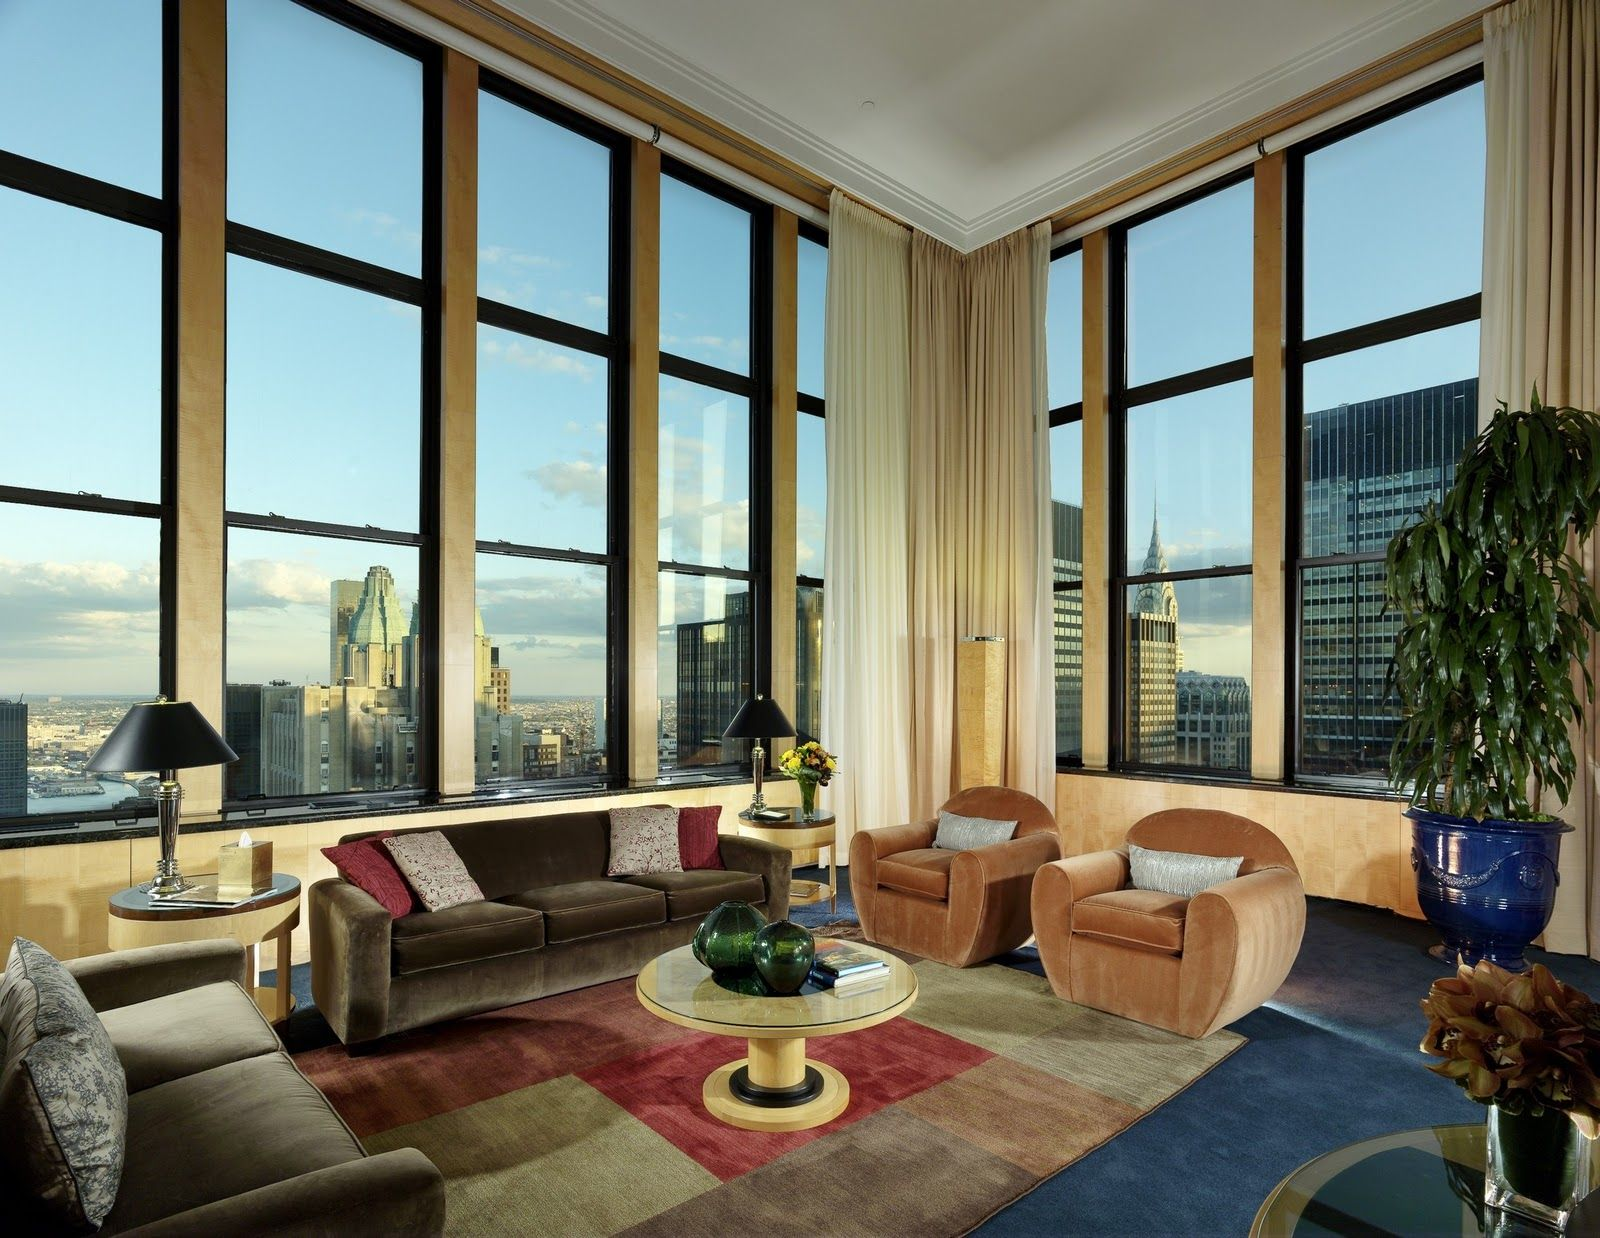 the palace hotel triplex penthouse oyster.com | The New York Palace: Fit for